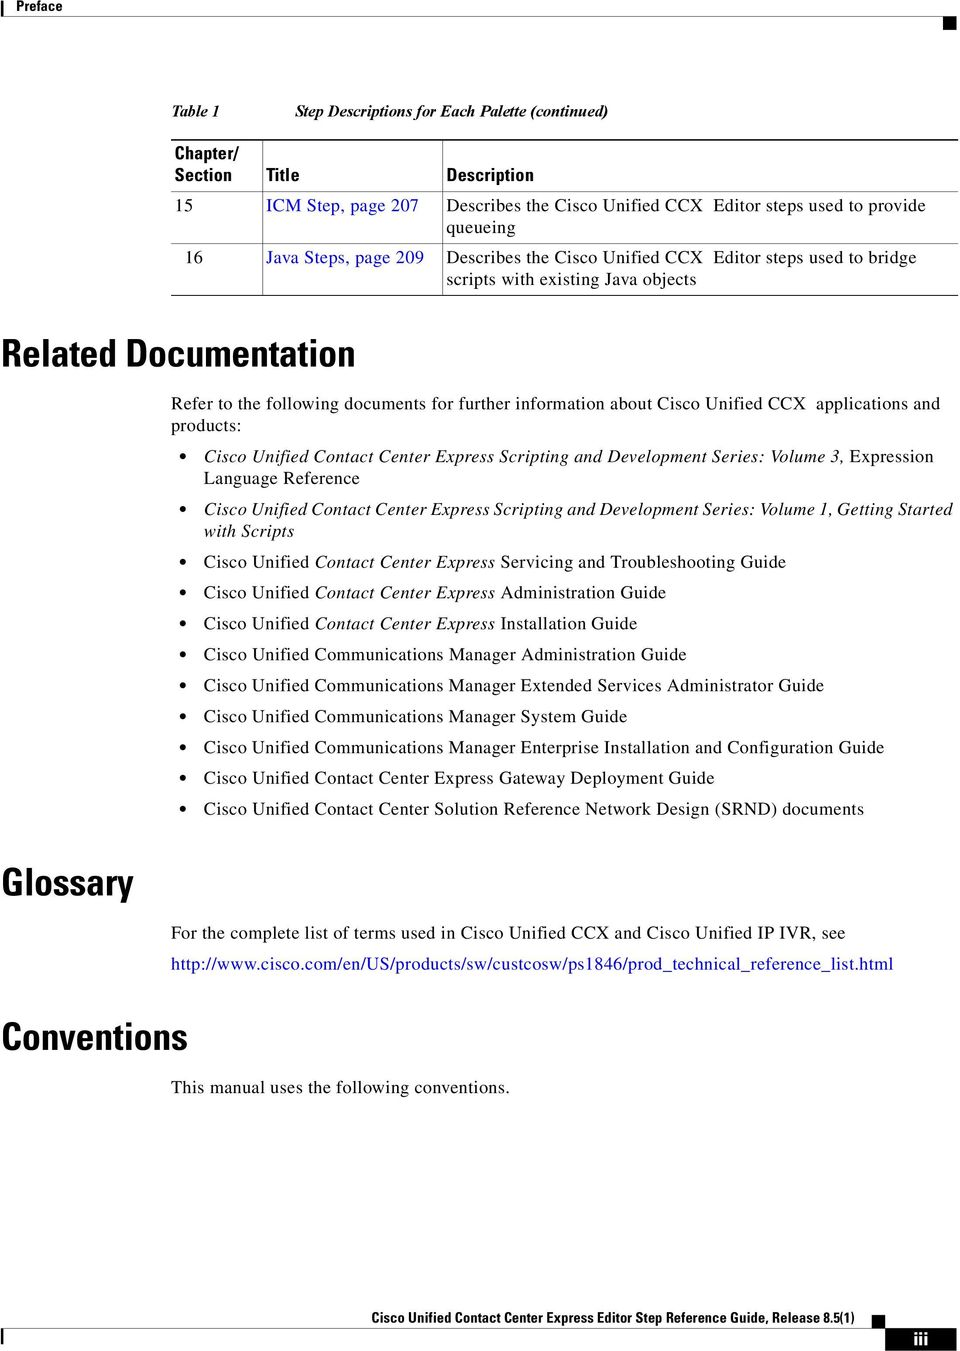 Cisco Unified Contact Center Express Editor Step Reference